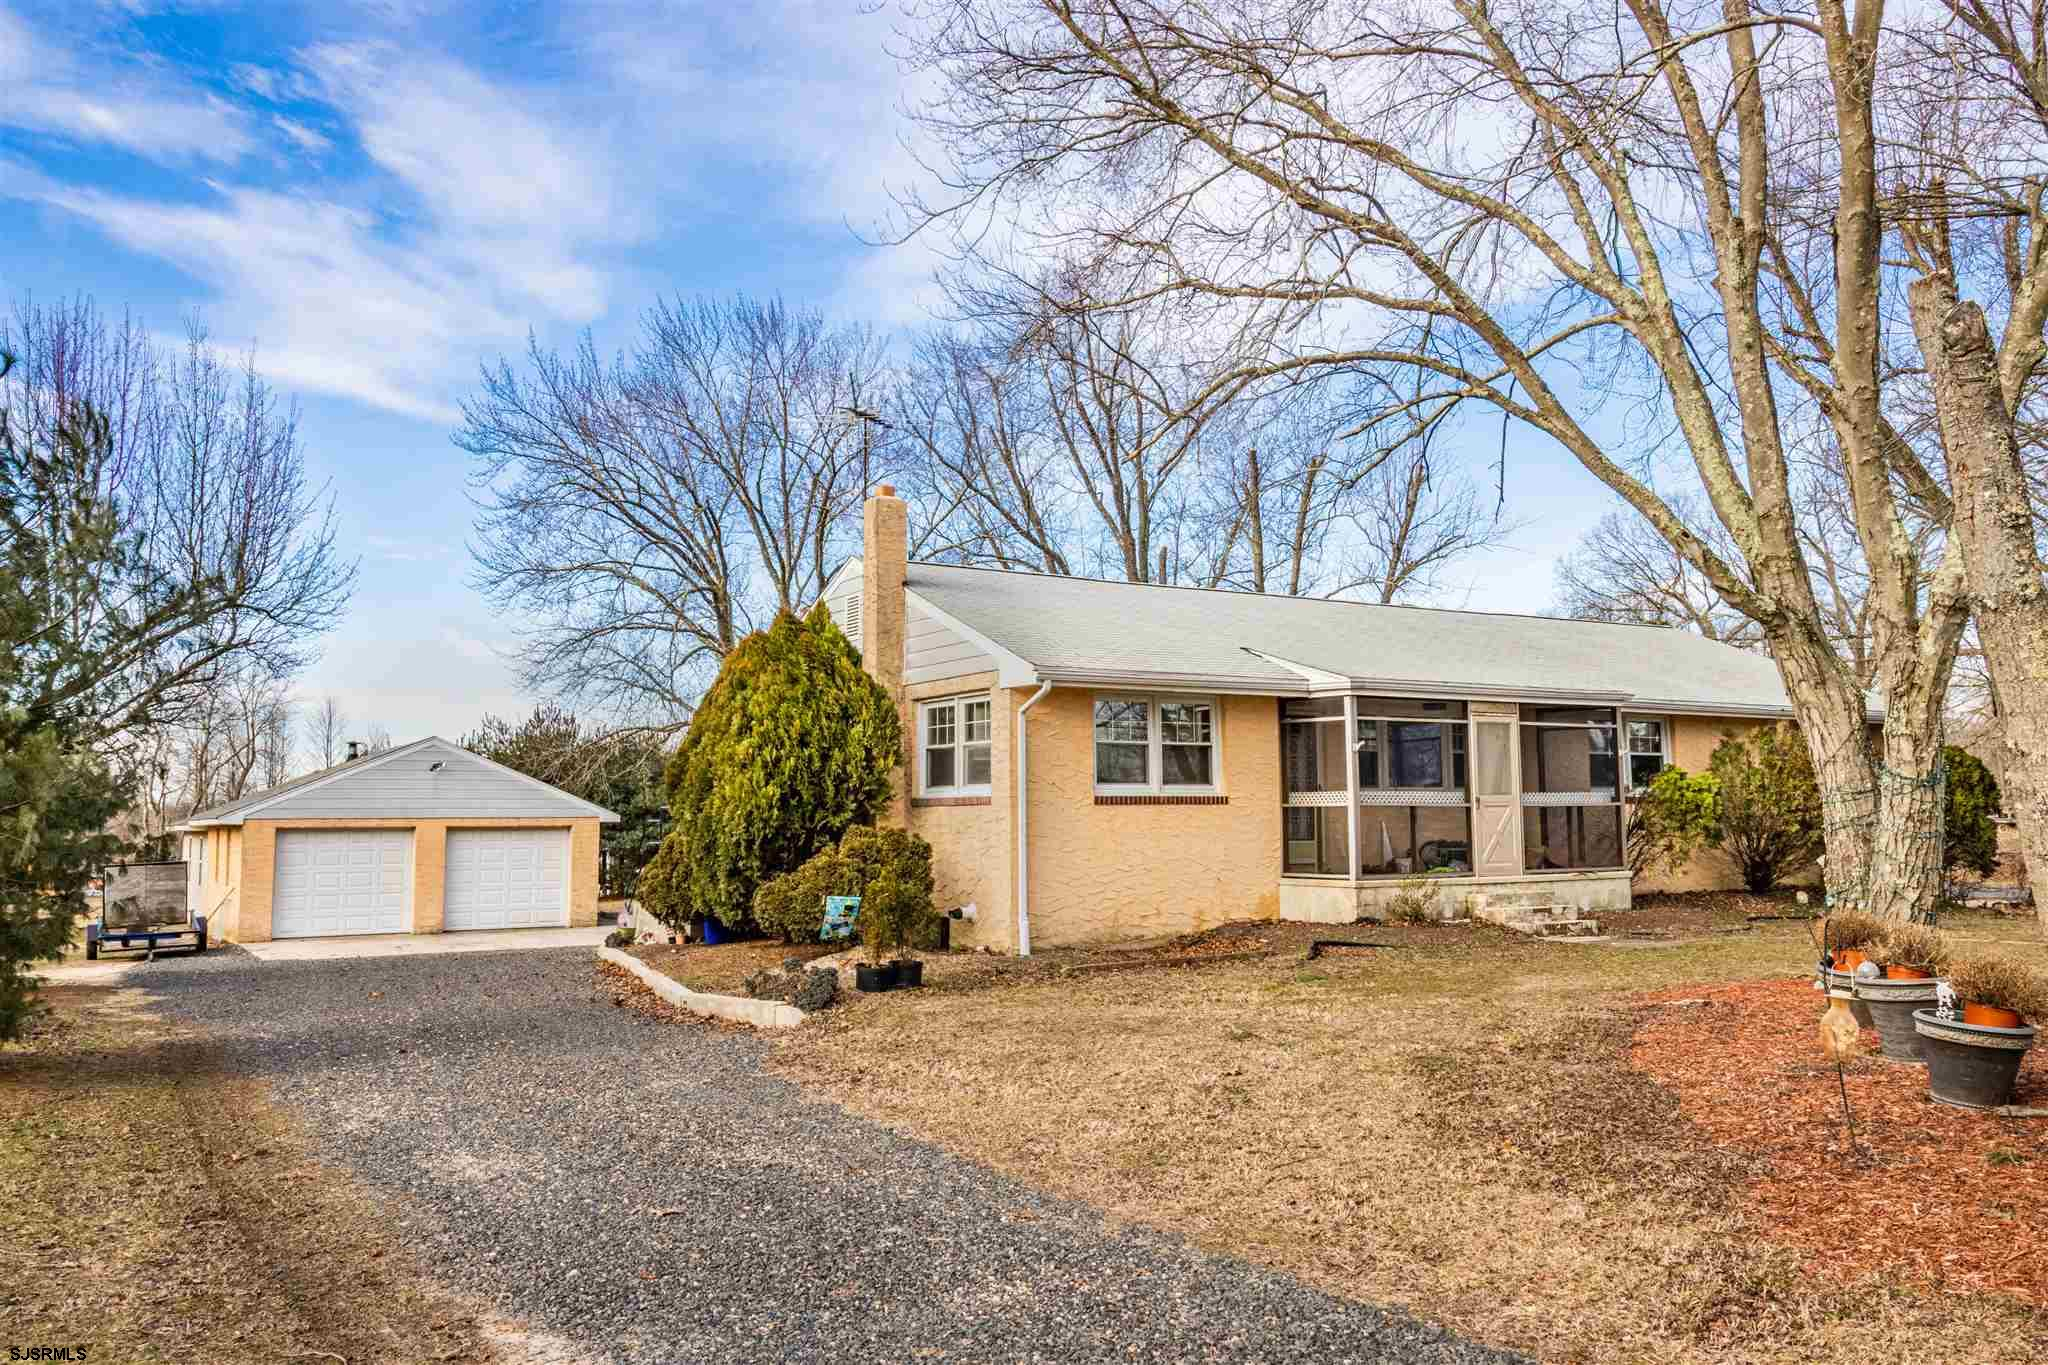 Experience the unexpected at 202 S. 2nd Road in Hammonton. Big rancher with 5 bedrooms and a full ba